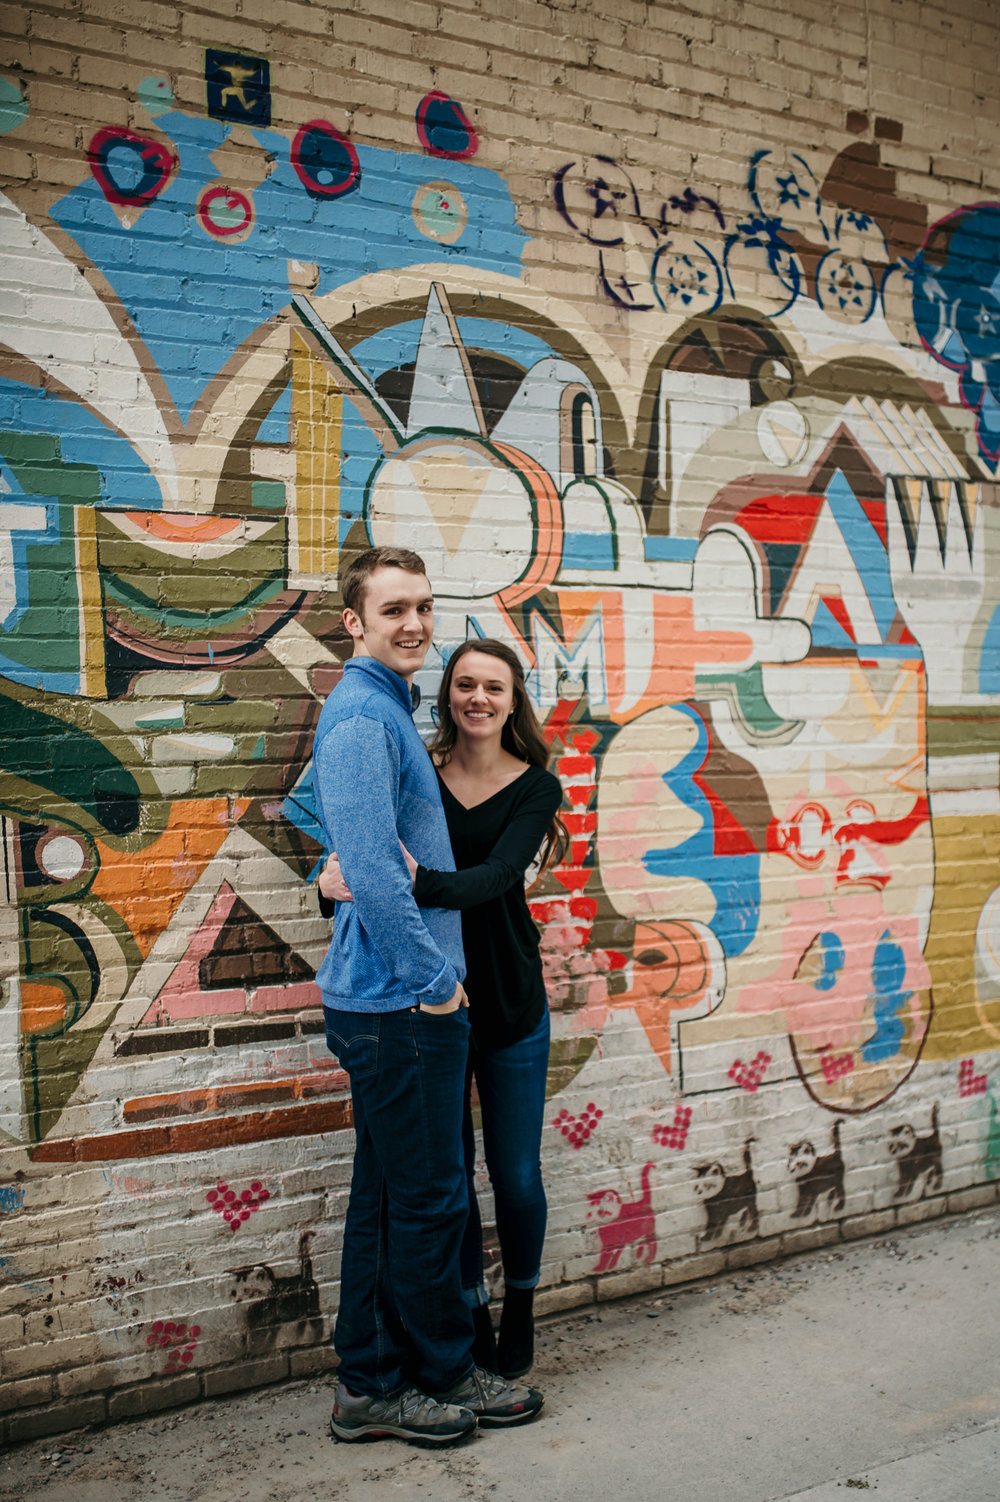 012 Downtown Missoula Engagement Session_Montana Engagement Session_Kelsey Lane Photography_Tifani + Ryan Engagement-1156.jpg